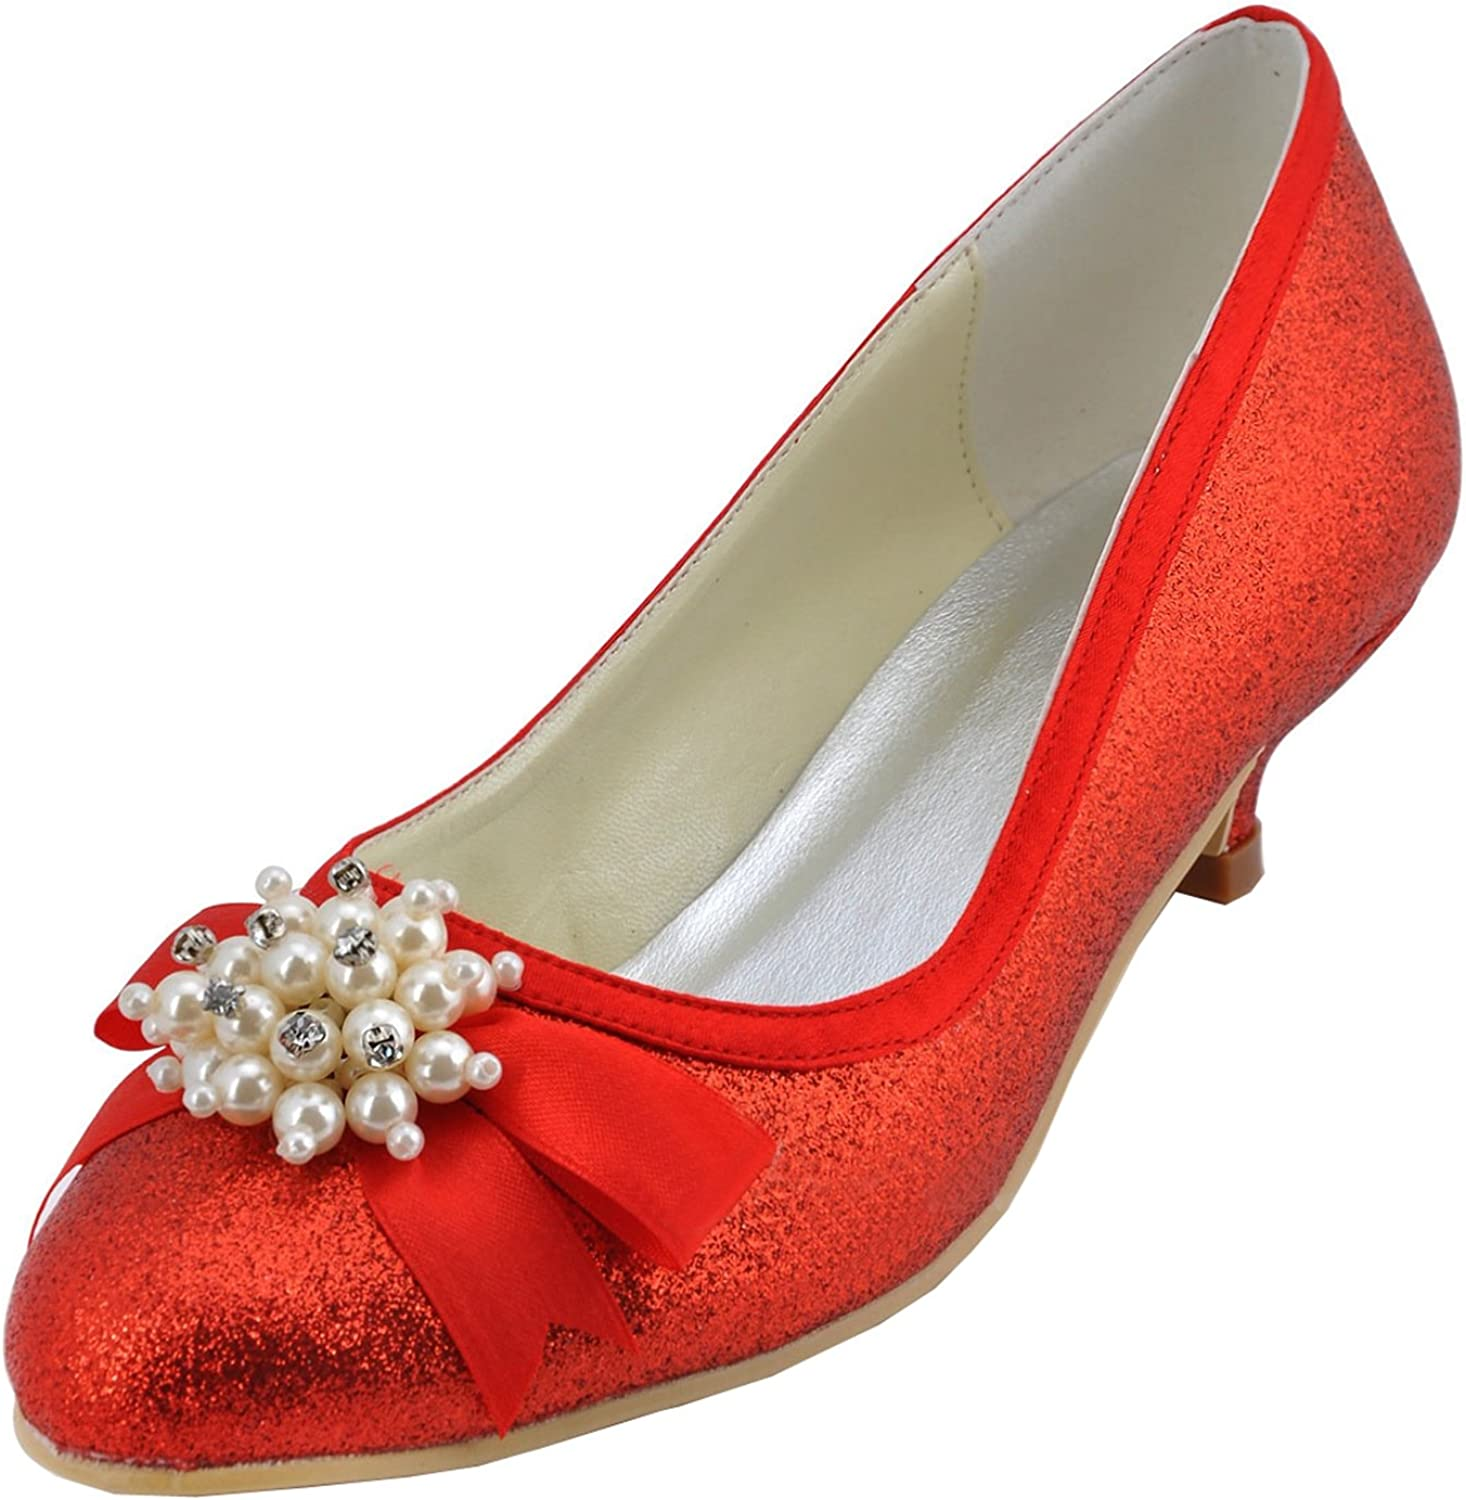 Minitoo GYMZ709 Womens Beading Flower Glitter Evening Party Prom Bridal Wedding shoes Pumps Sandals Flatfs